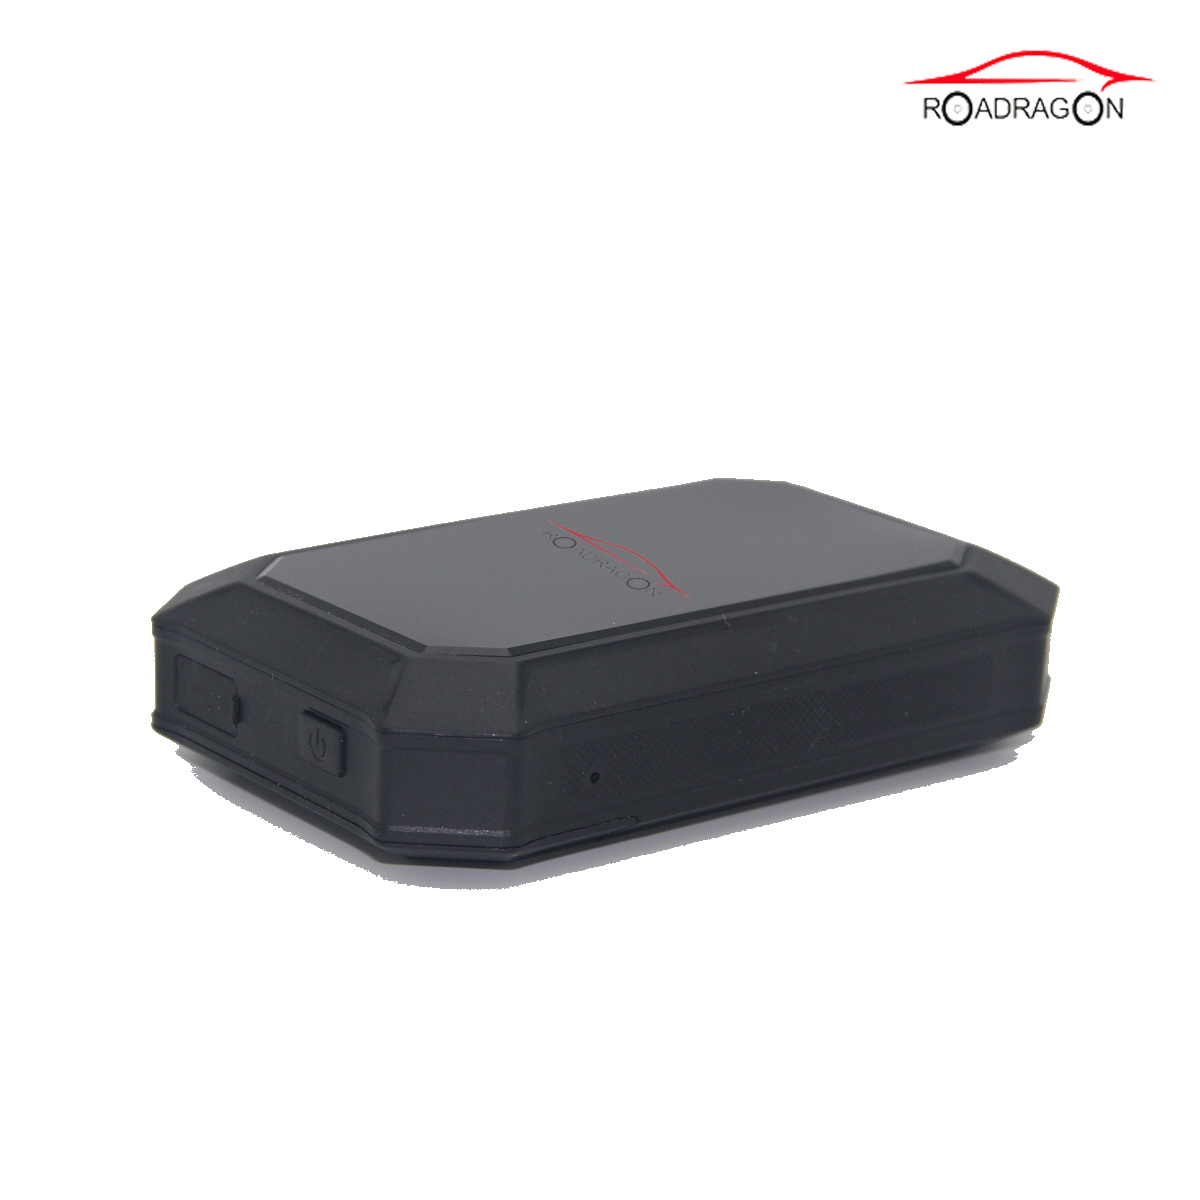 Best quality Fleet Vehicle Tracking System - 3Years long standby asset tracker GPS + LBS + WiFi real time tracking with strong magnet 5000mAh mini GPS tracker – Dragon Bridge